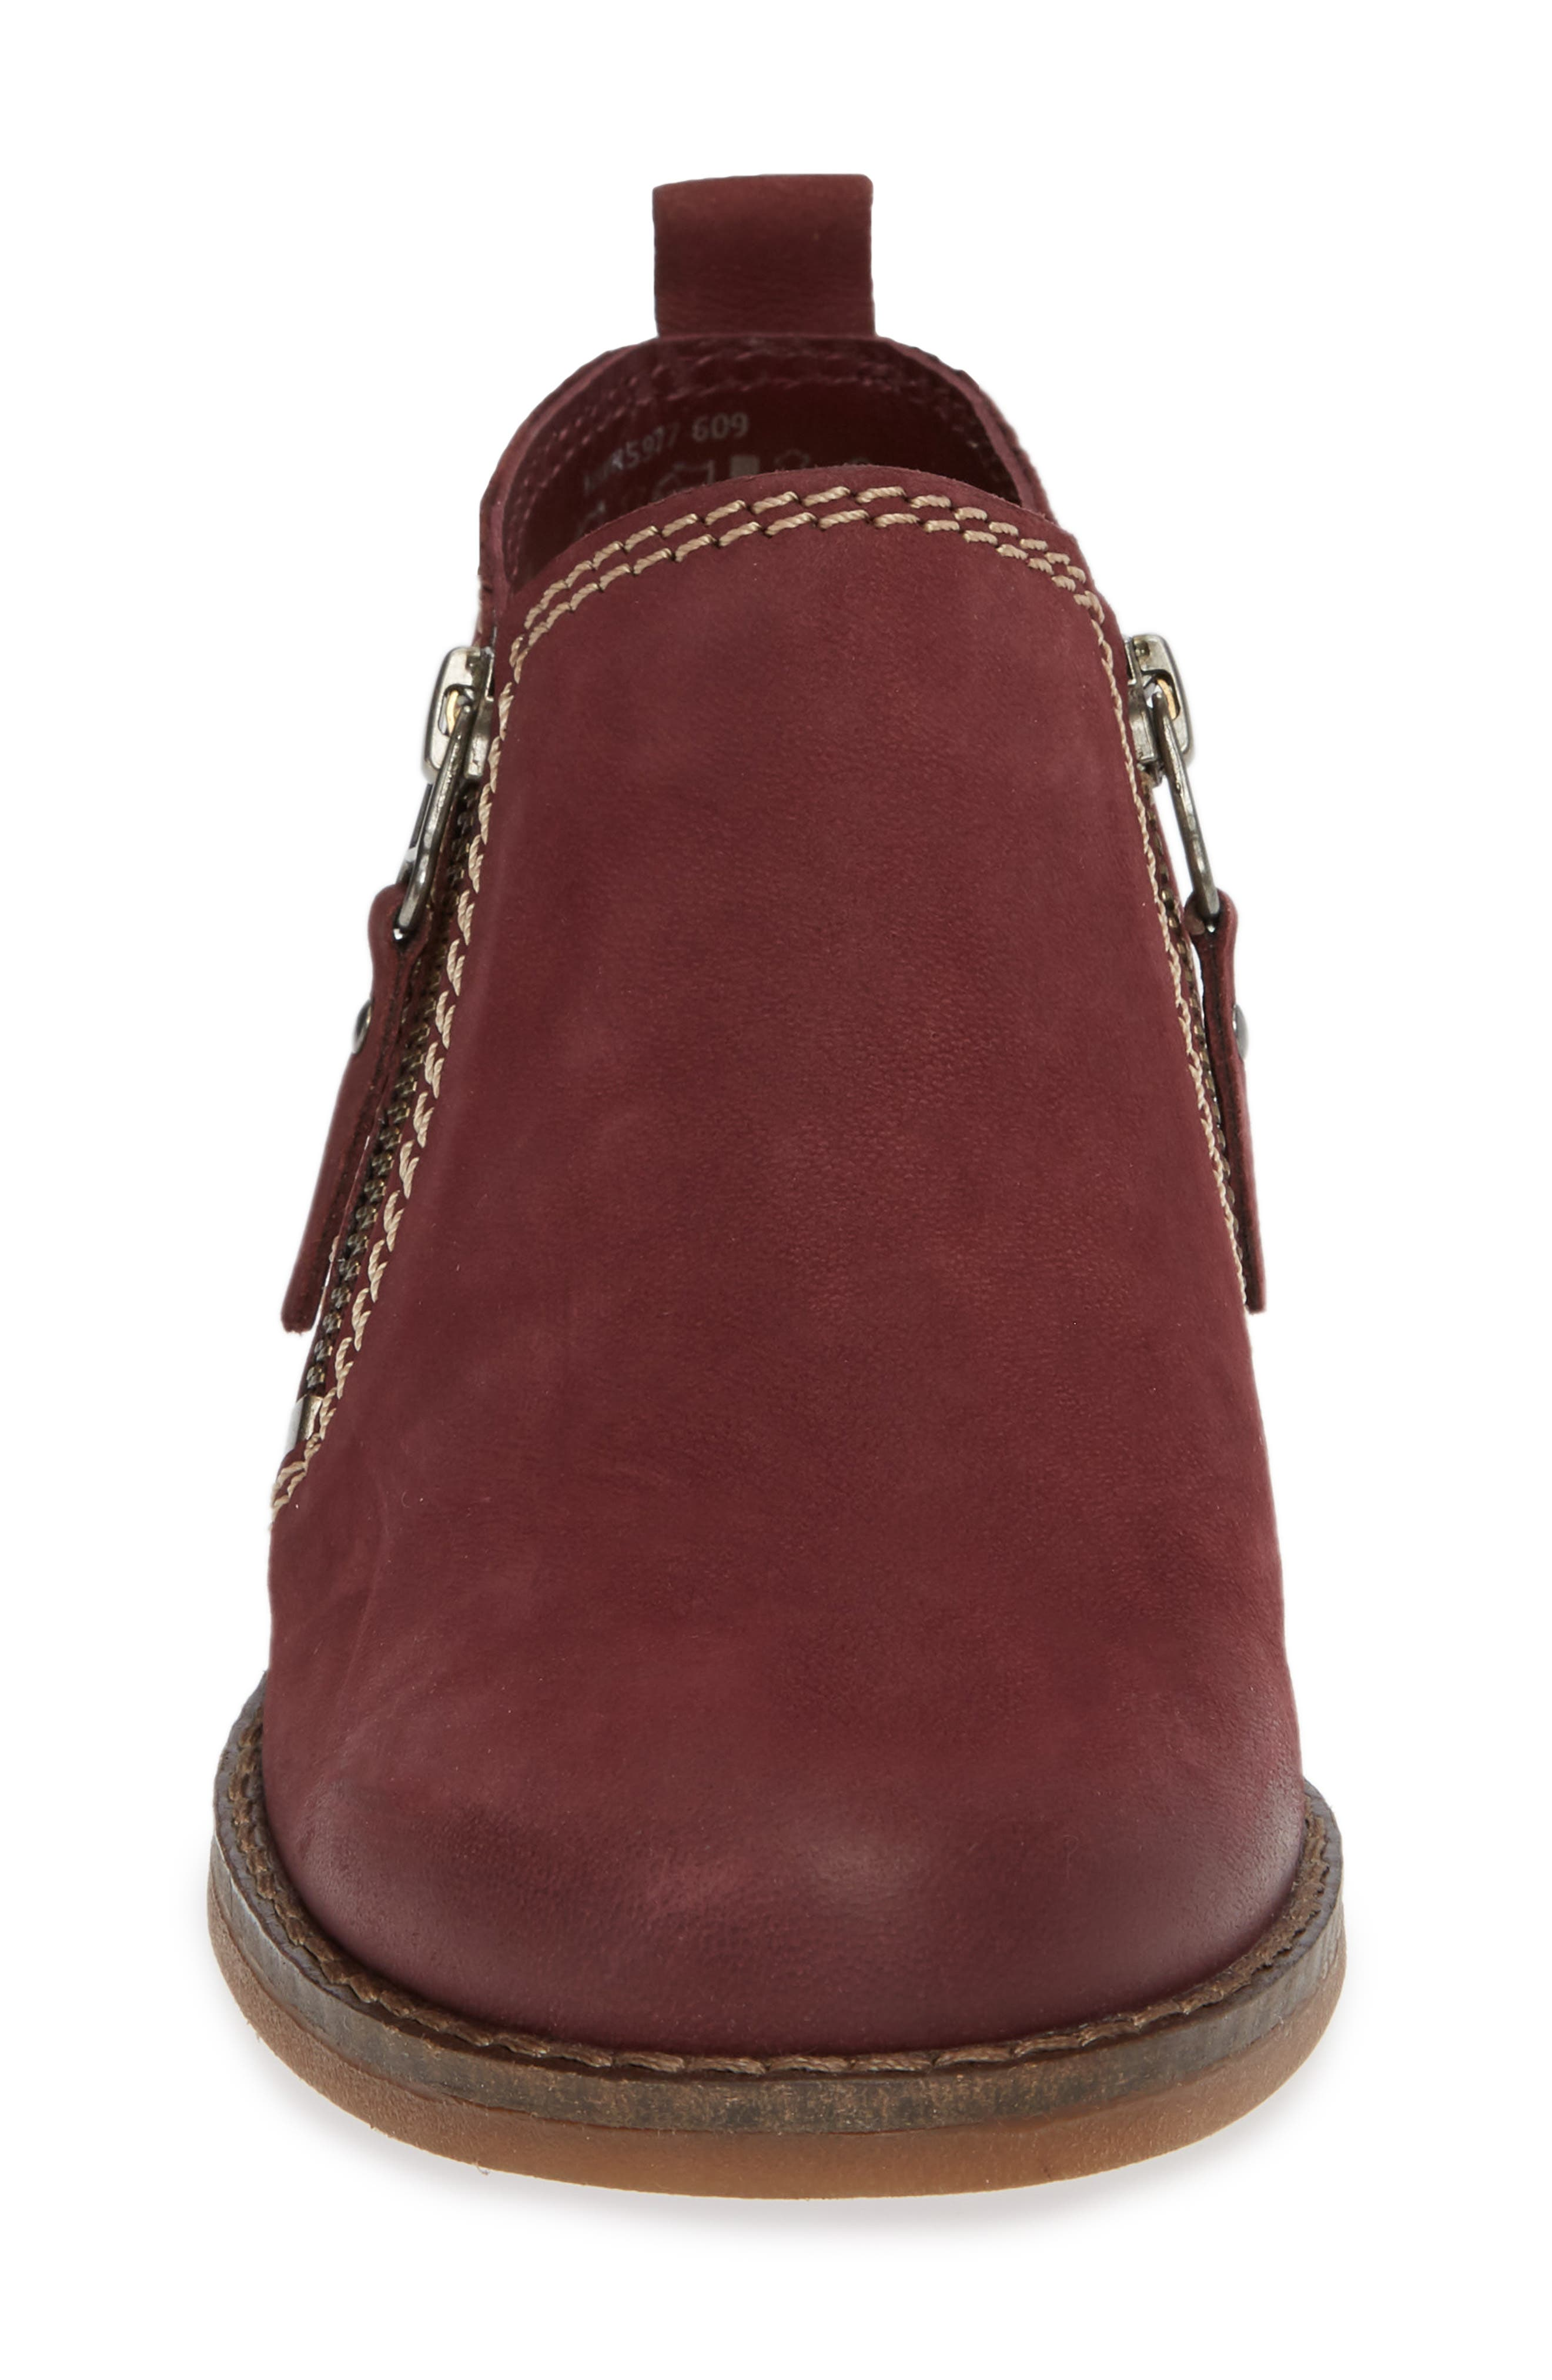 'Mazin Cayto' Bootie,                             Alternate thumbnail 4, color,                             Dark Wine Nubuck